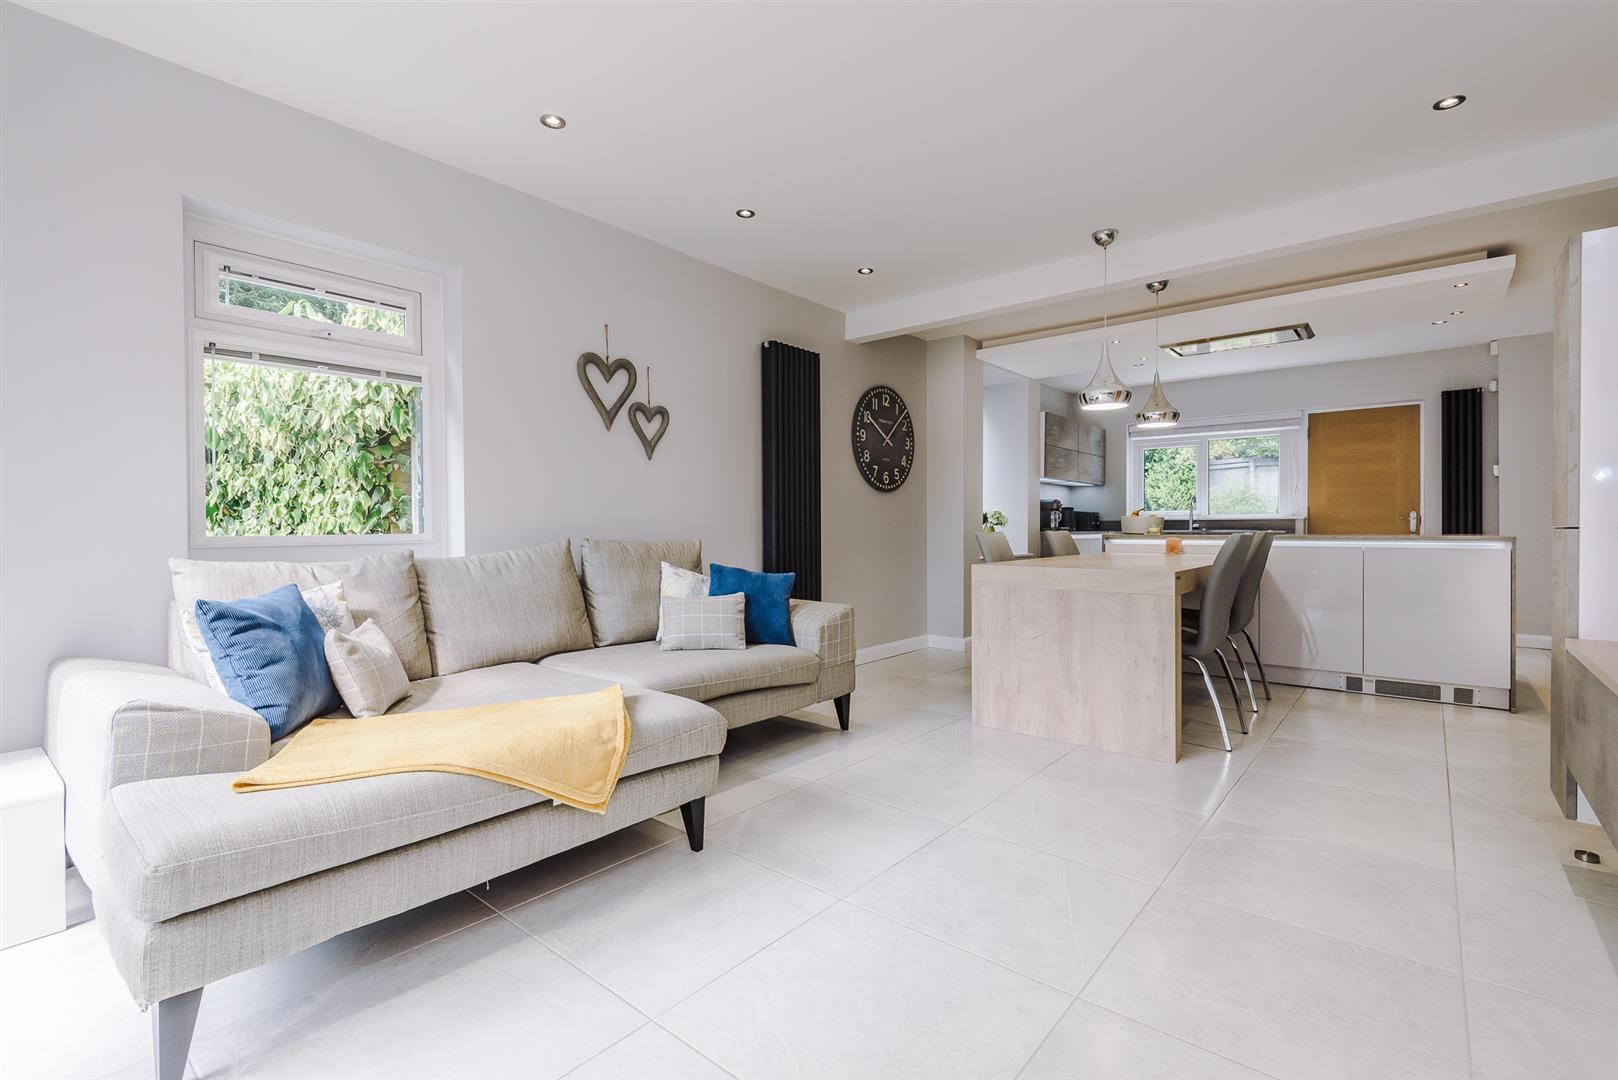 4 bedroom detached house For Sale in Bolton - DSC_6394.jpg.